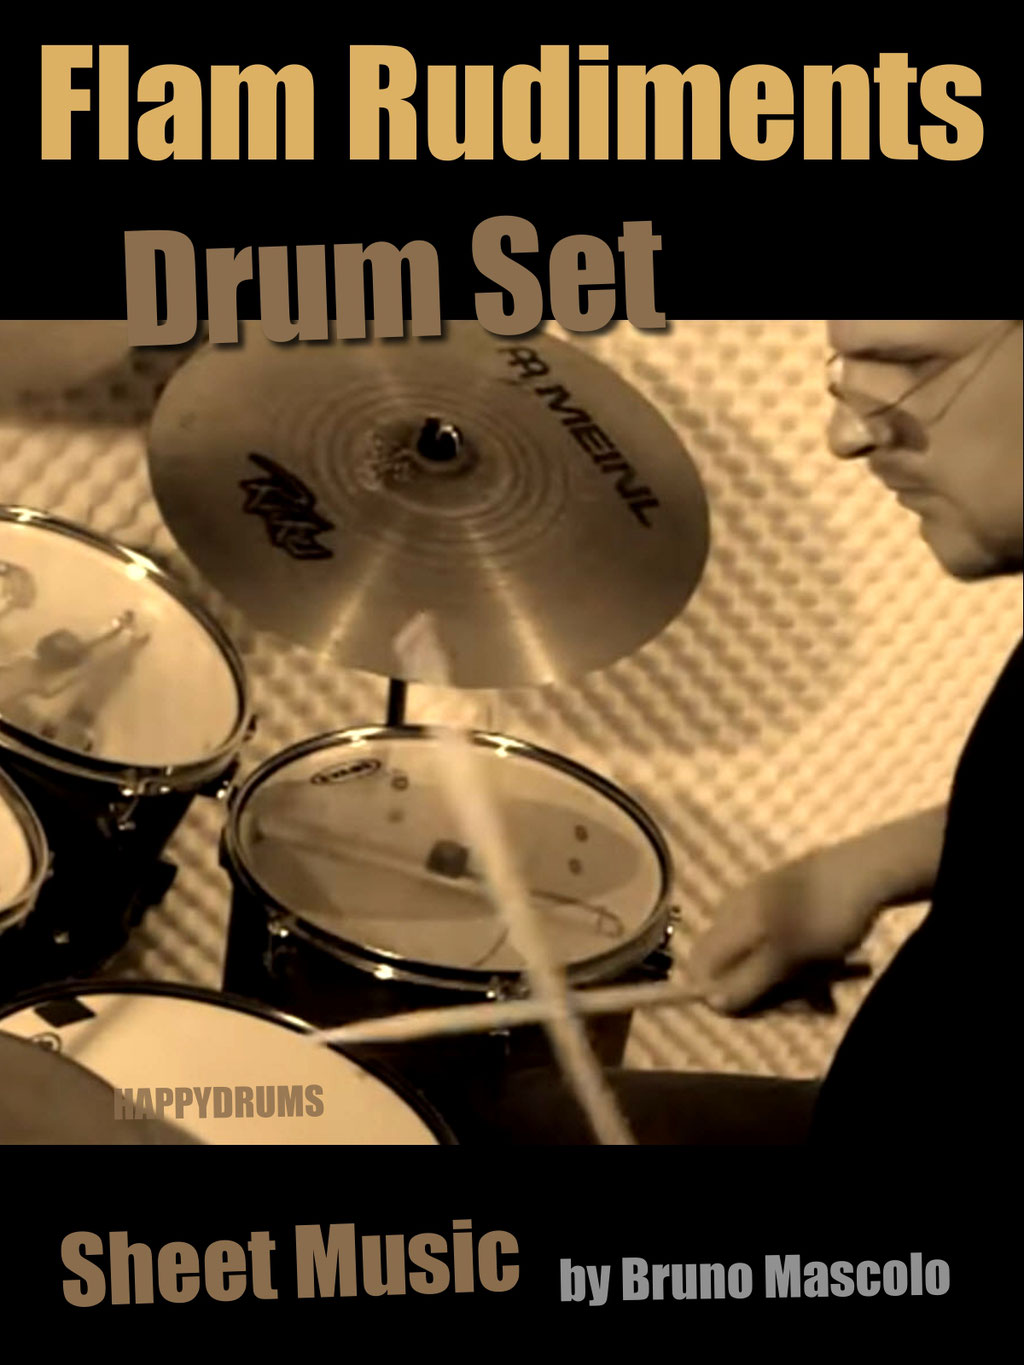 Flam Rudiments am Drumset